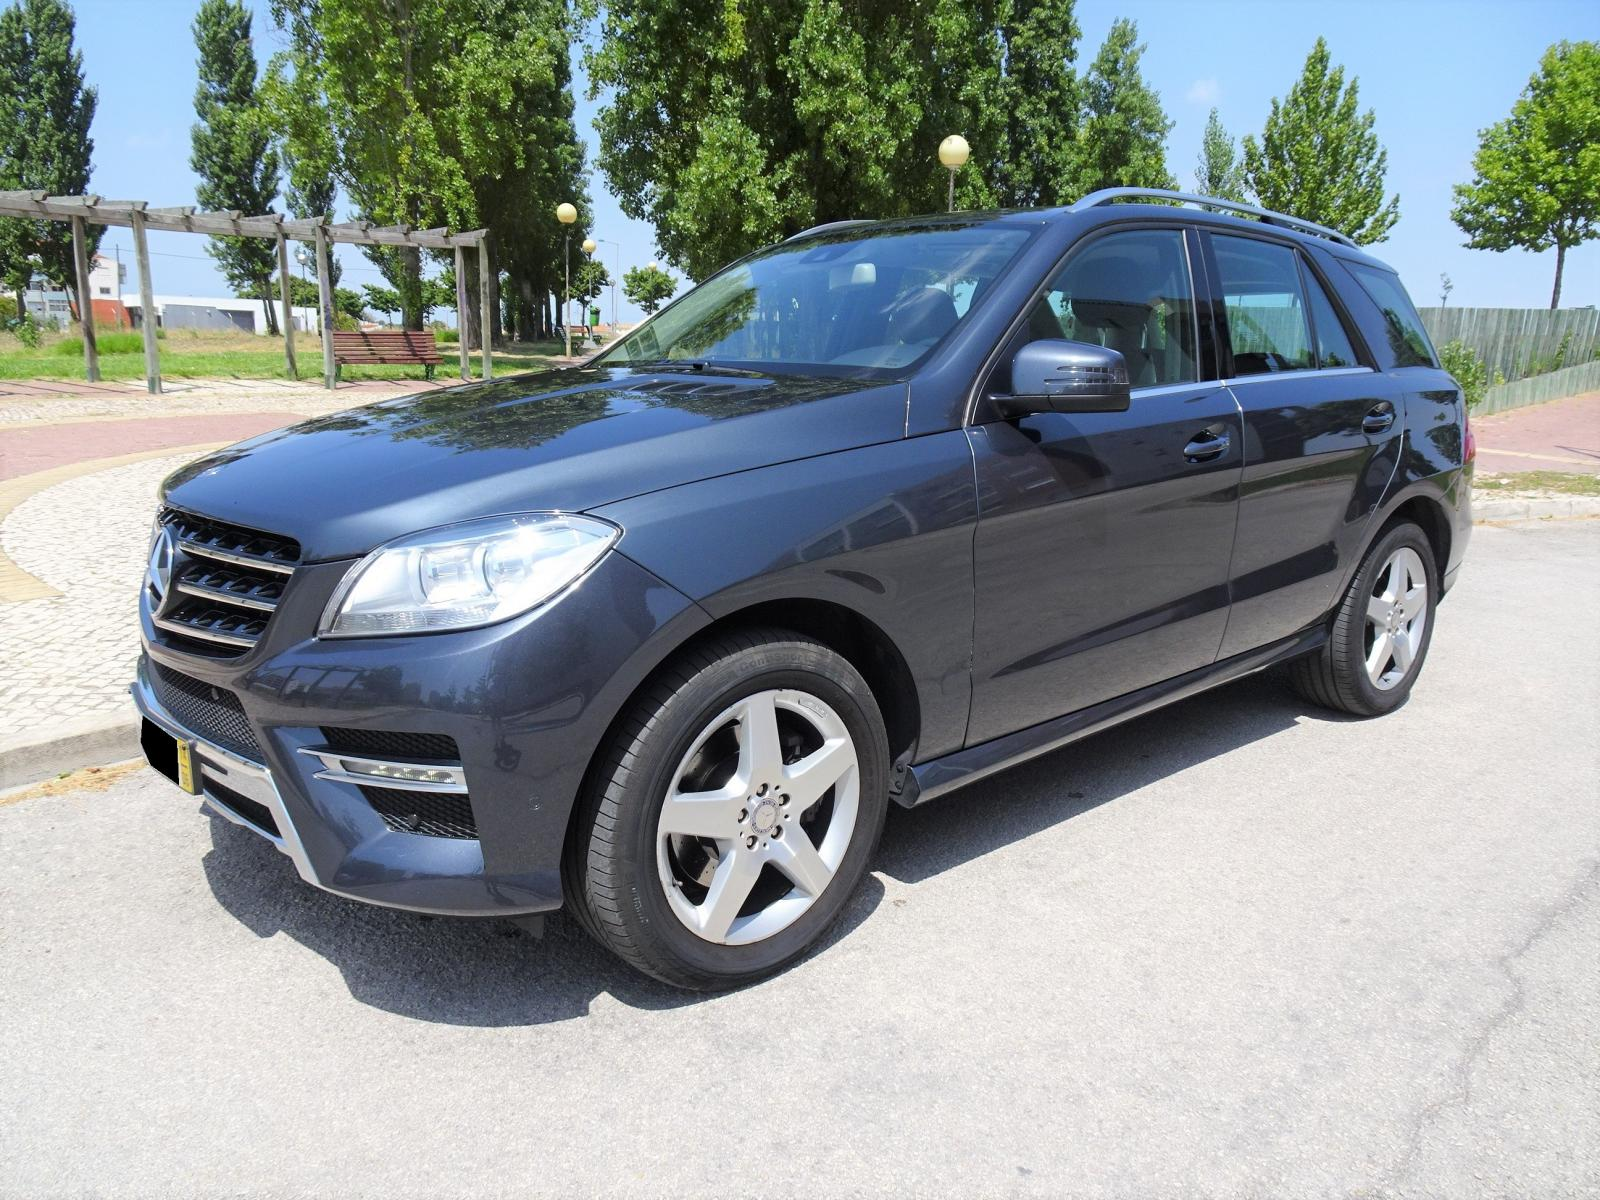 Mercedes-Benz-ML 250 BlueTEC 4MATIC AMG